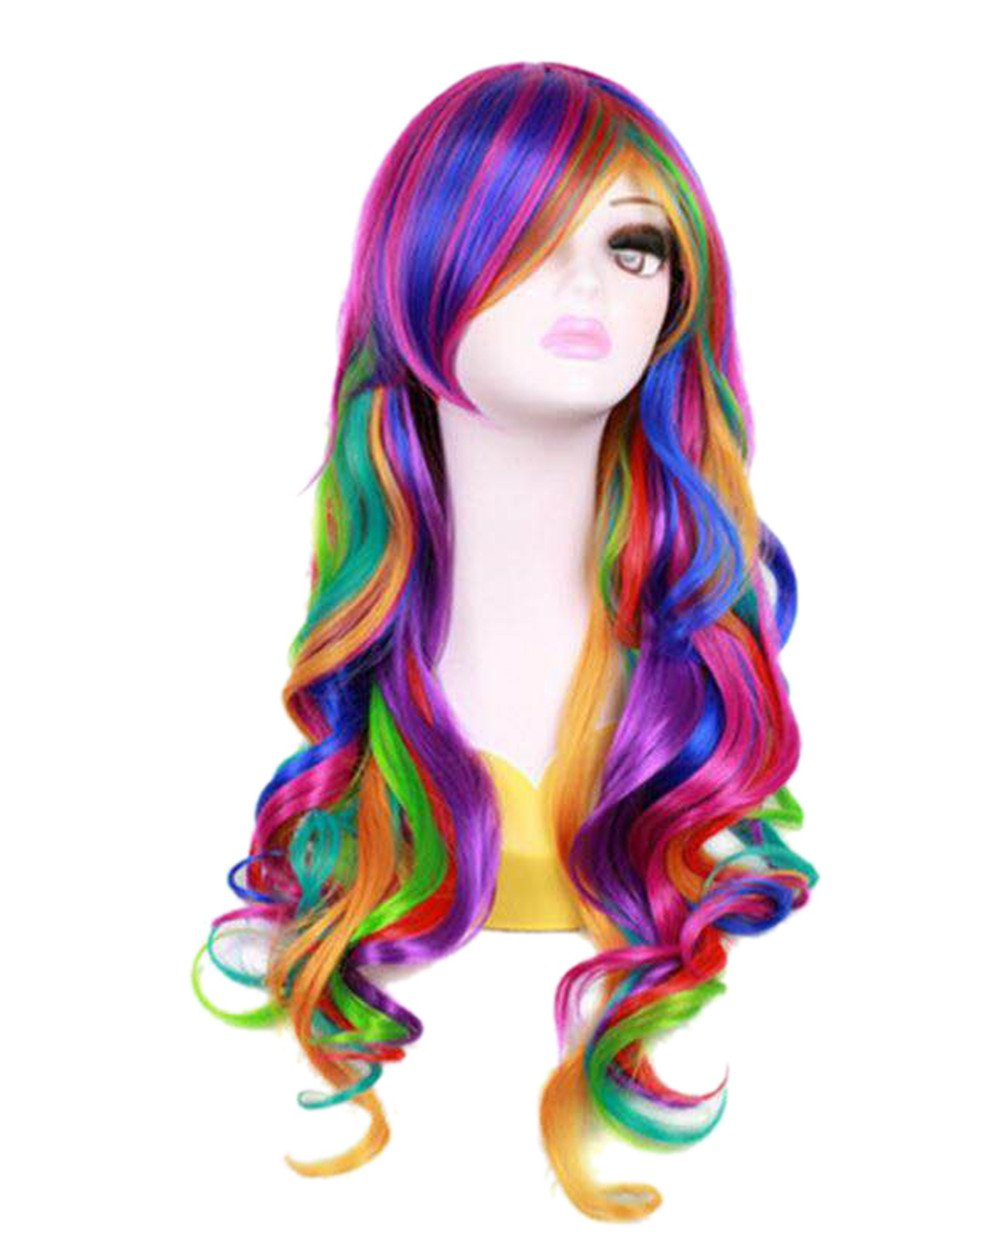 27.56'' Long Rainbow Big Wavy Ombre Spring Bouquet Cosplay Wig For Women Harajuku Style Lolita Spiral Colorful Fiber Synthetic Halloween Wig